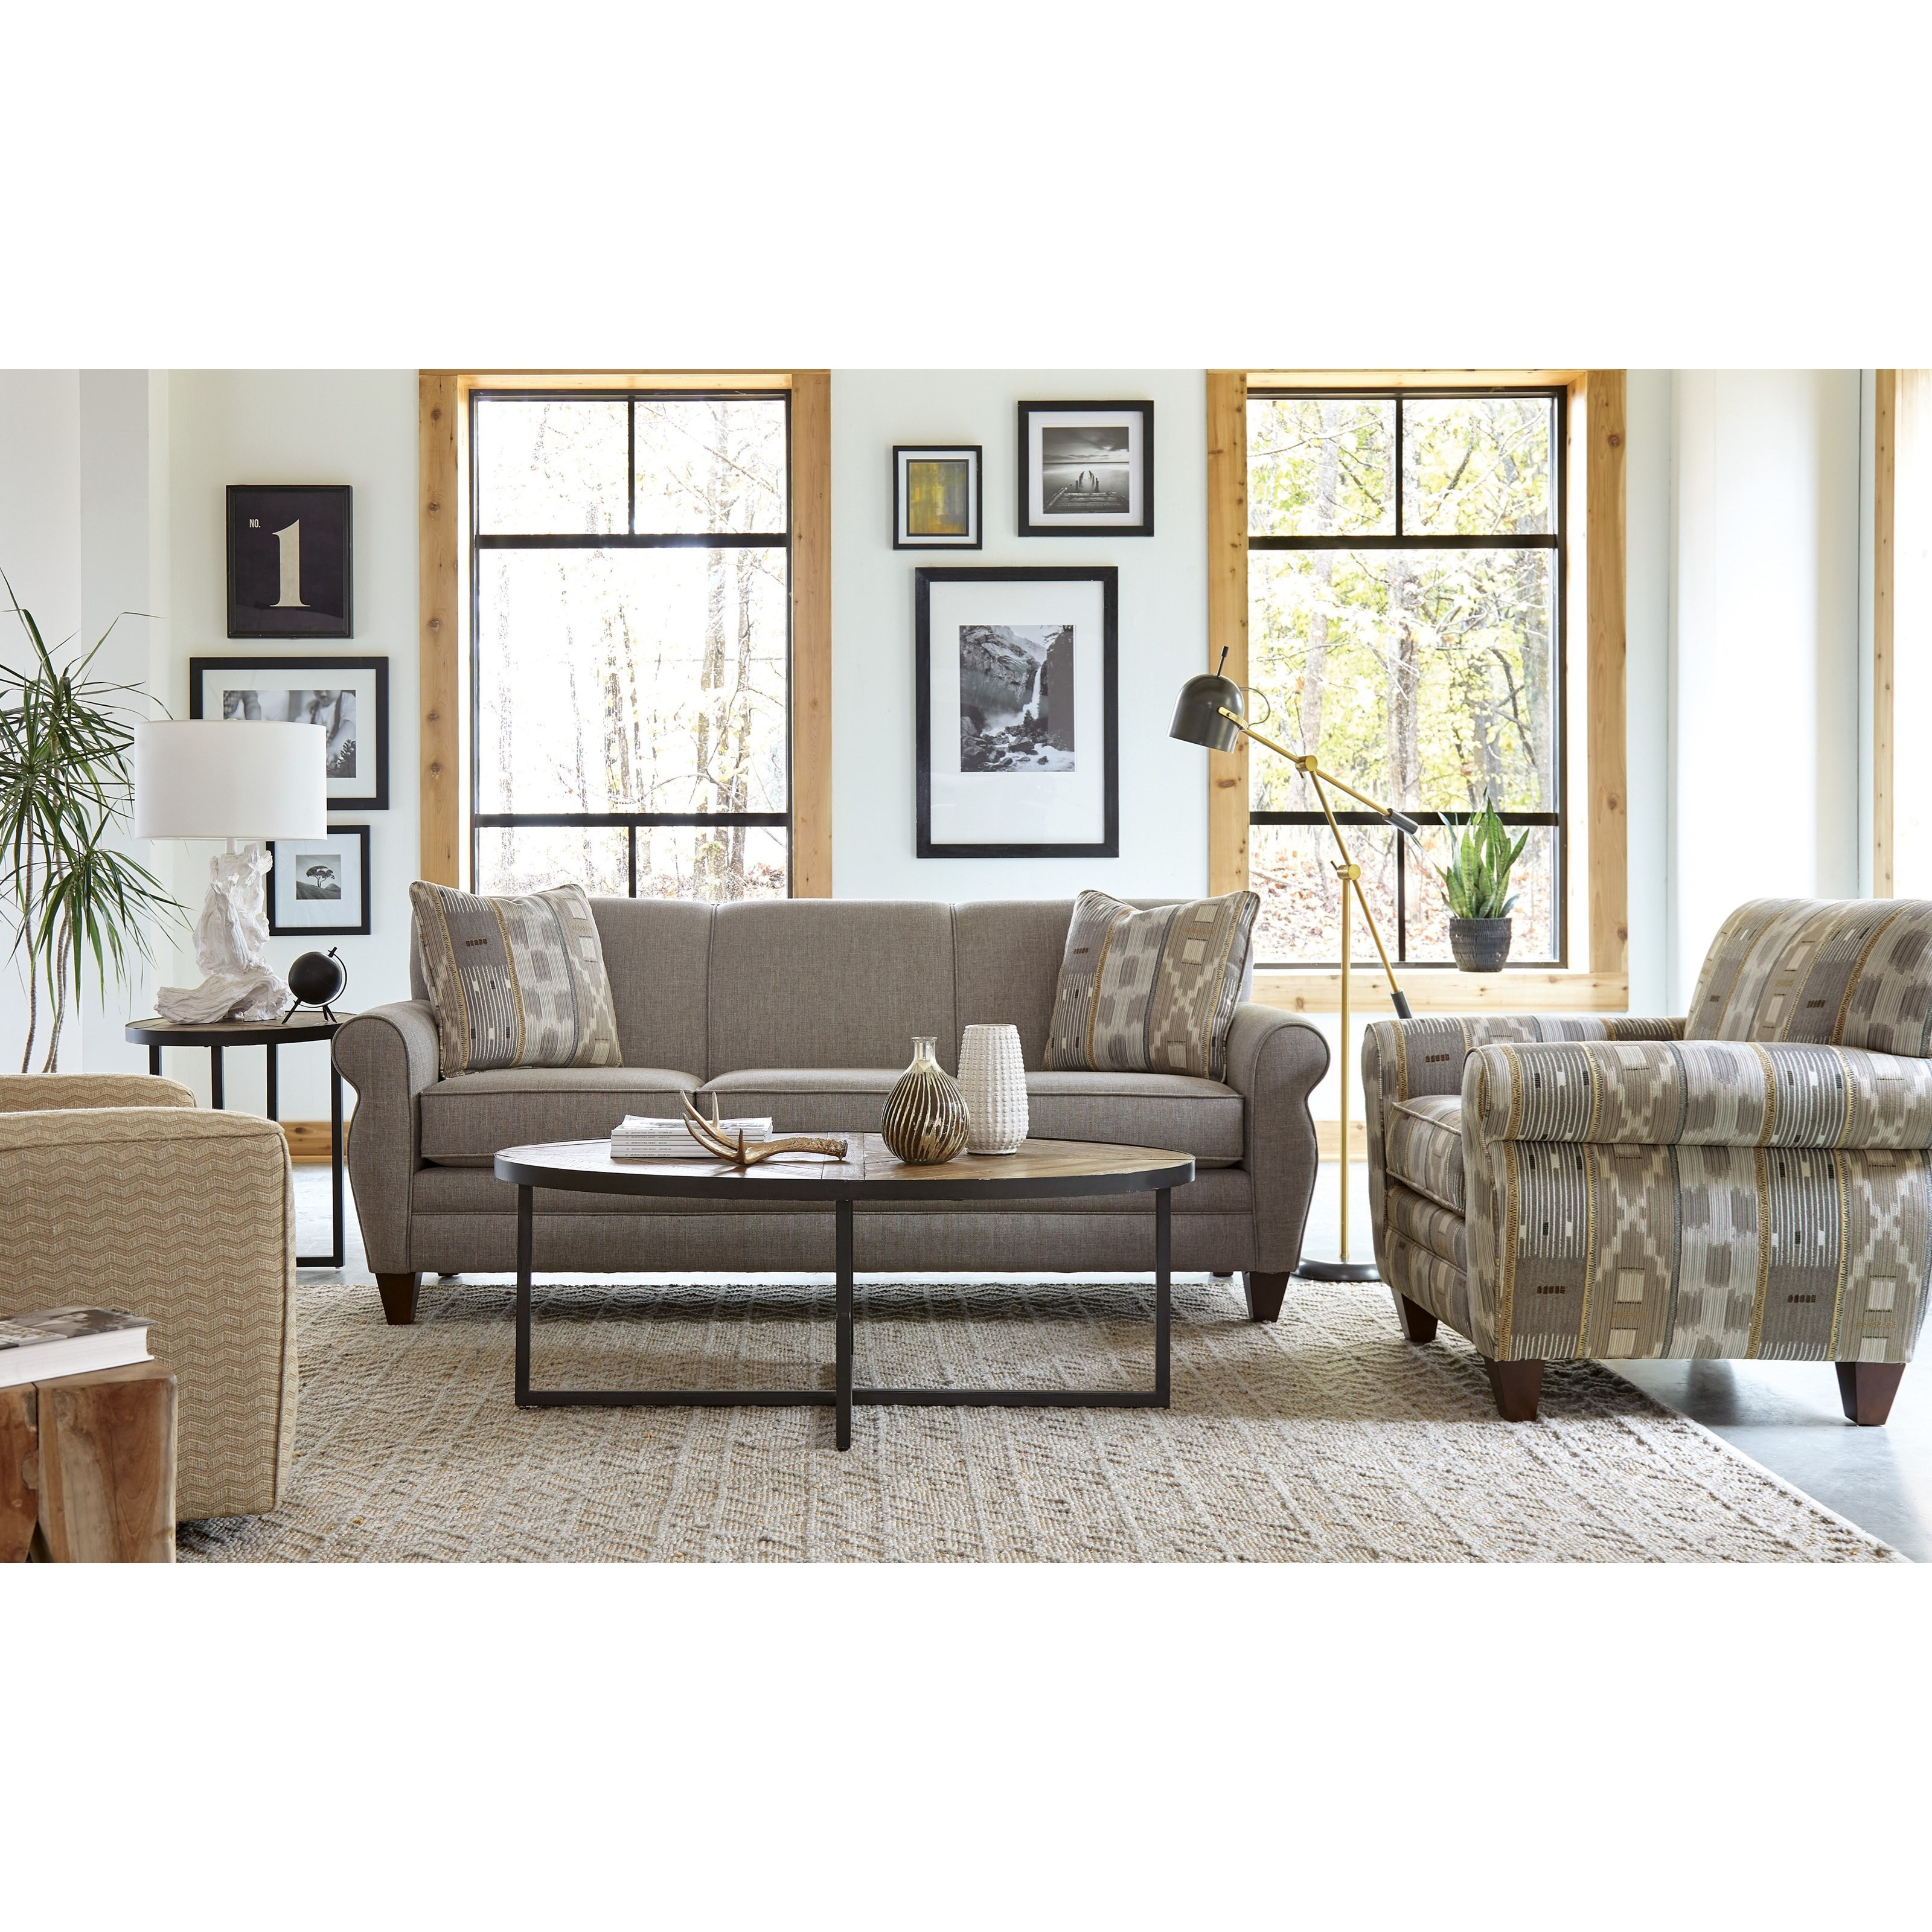 7388 Living Room Group by Hickory Craft at Godby Home Furnishings